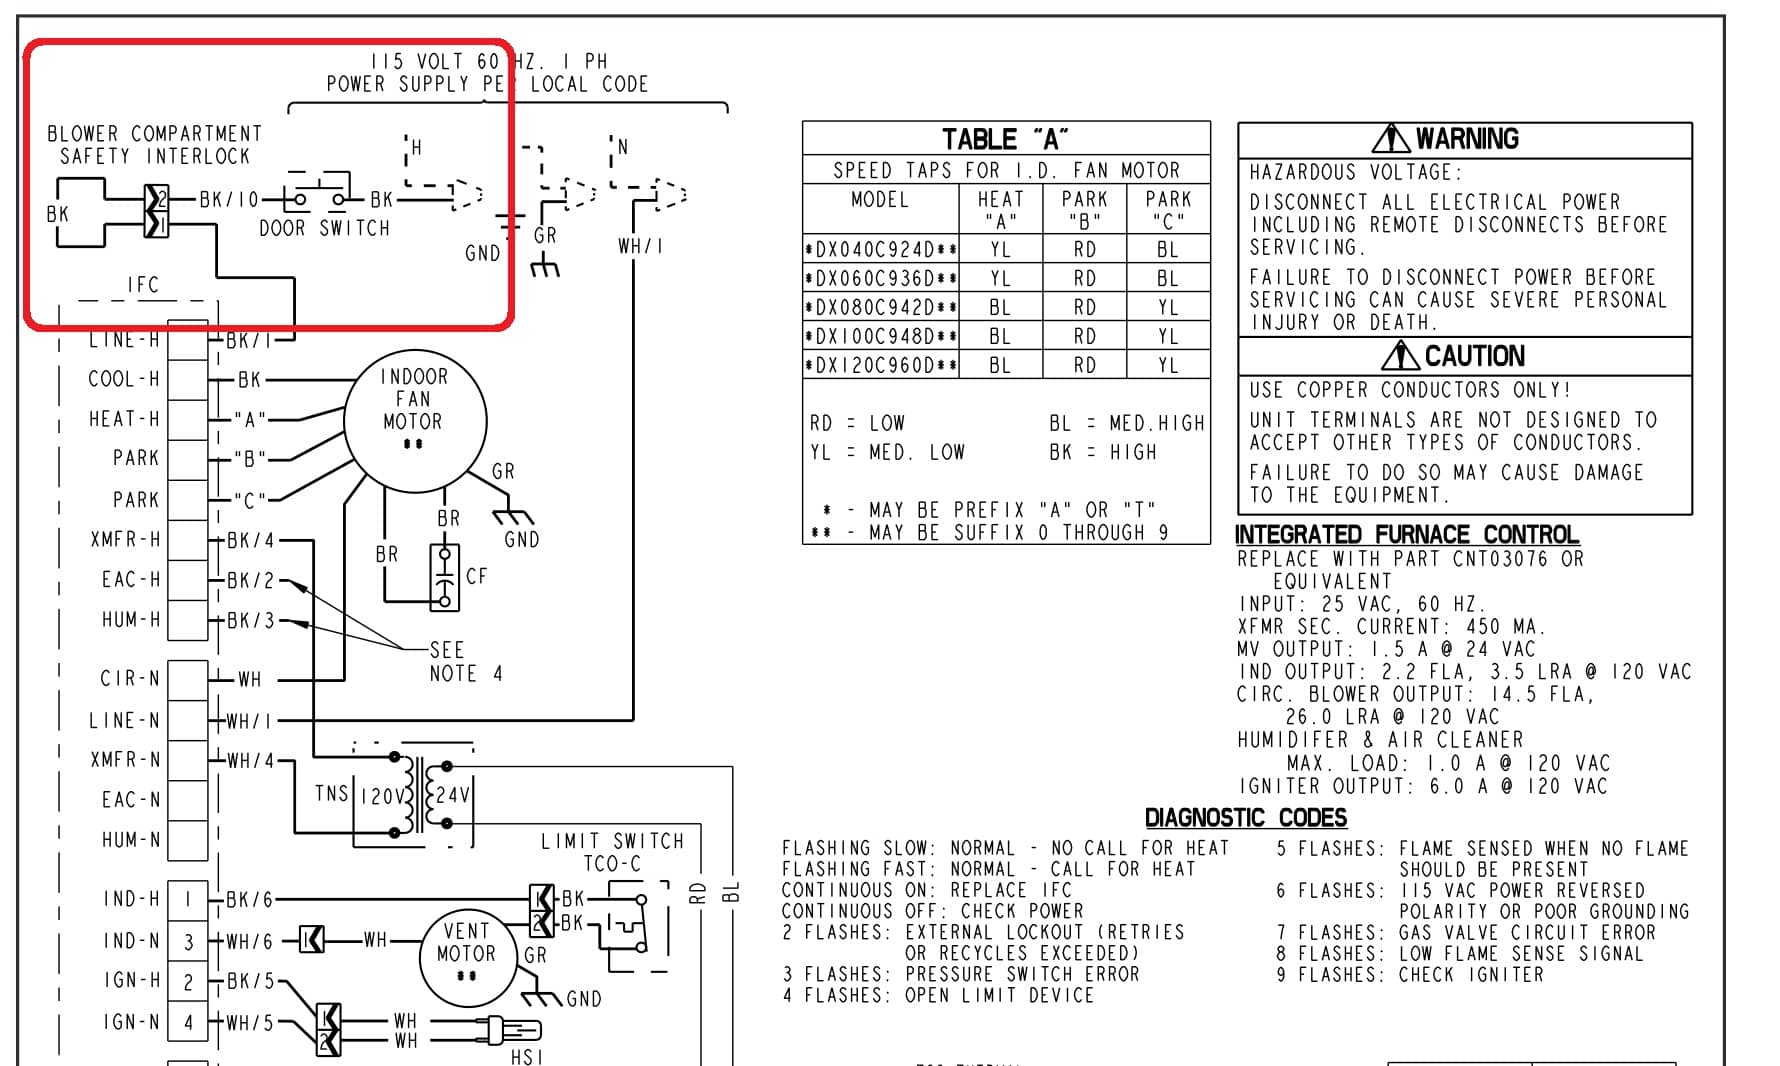 furnace wiring diagram trane blower compartment door switch wiring